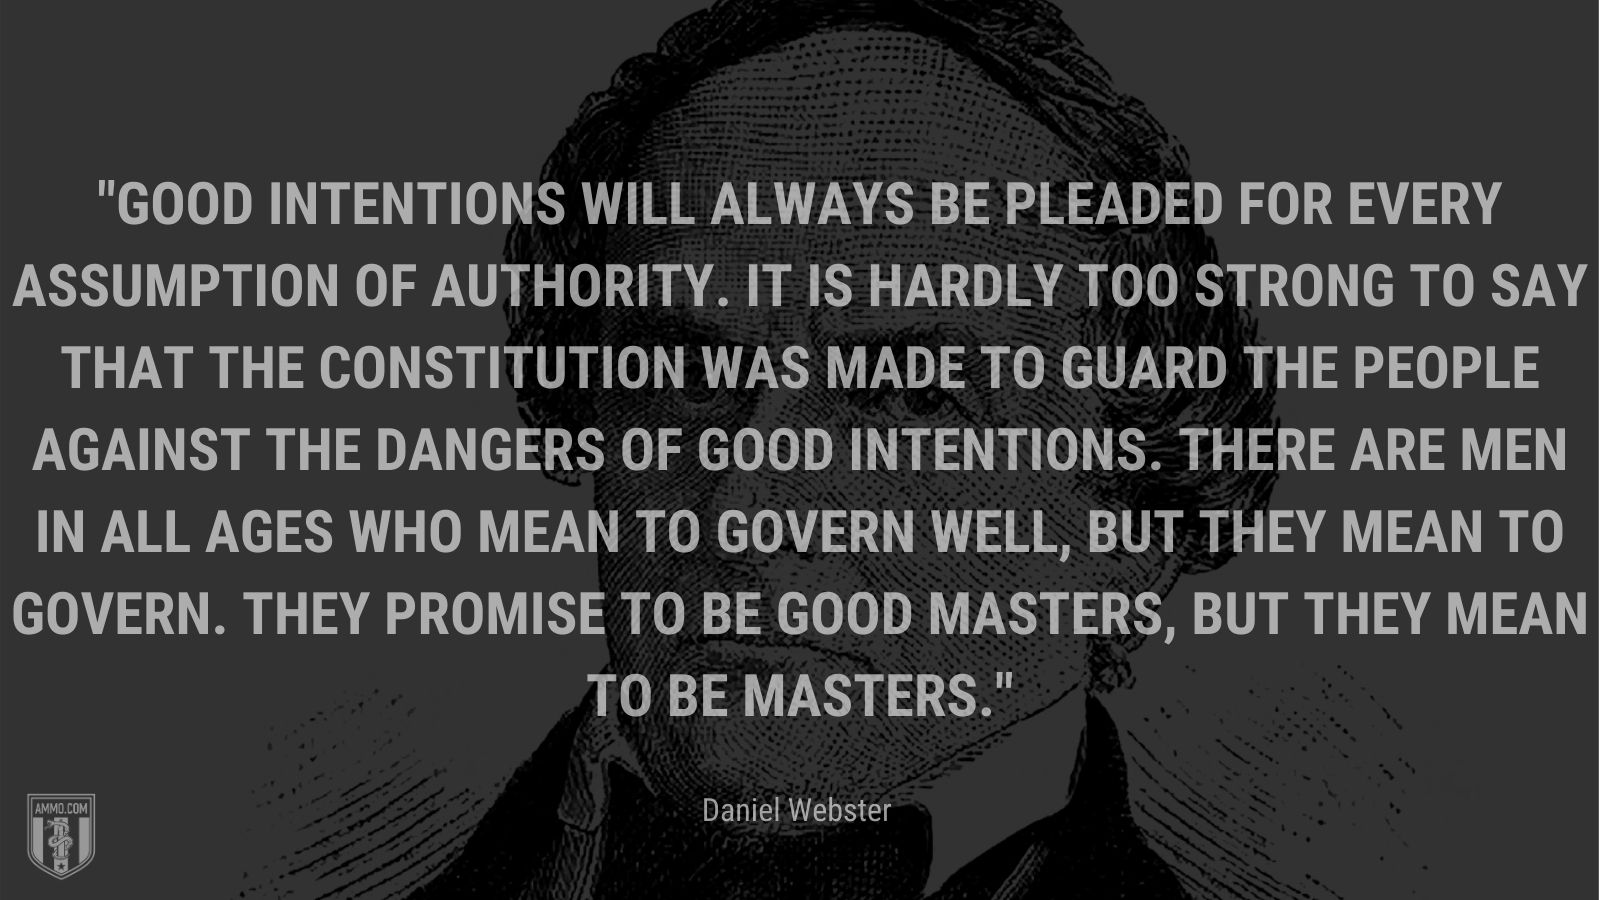 """""""Good intentions will always be pleaded for every assumption of authority. It is hardly too strong to say that the Constitution was made to guard the people against the dangers of good intentions. There are men in all ages who mean to govern well, but they mean to govern. They promise to be good masters, but they mean to be masters. - Daniel Webster"""